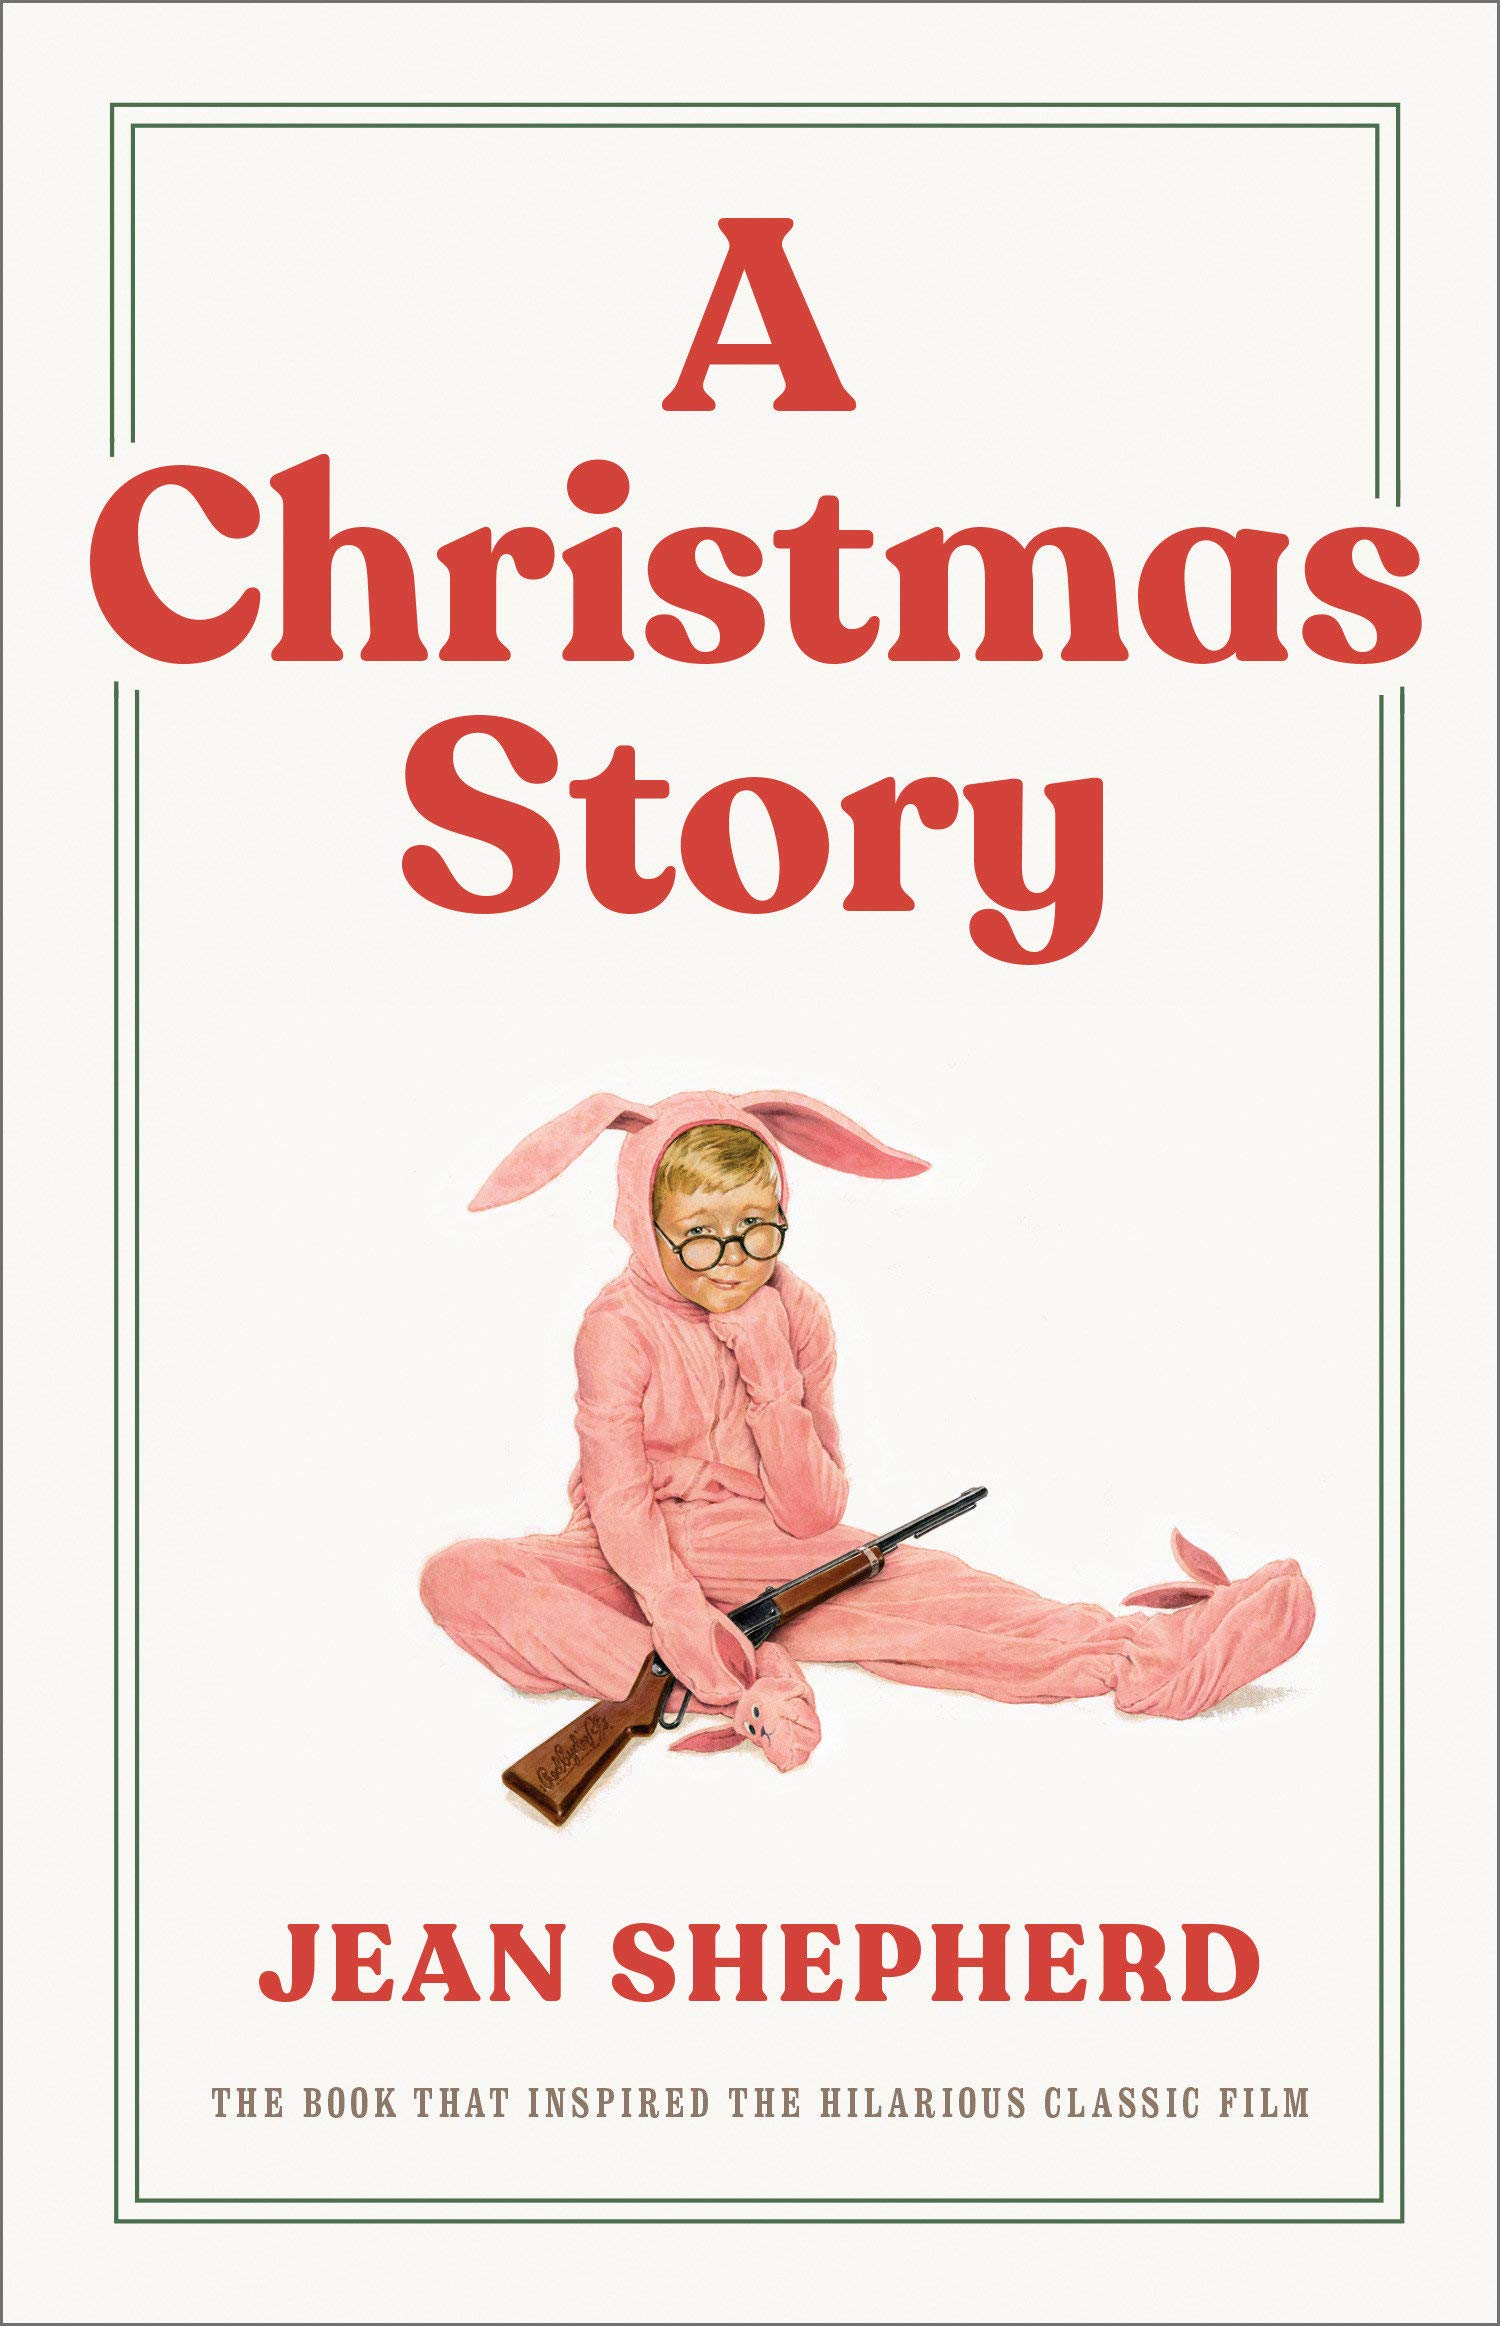 A Christmas Story: The Book That Inspired the Hilarious Classic Film:  Amazon.ca: Shepherd, Jean: Books